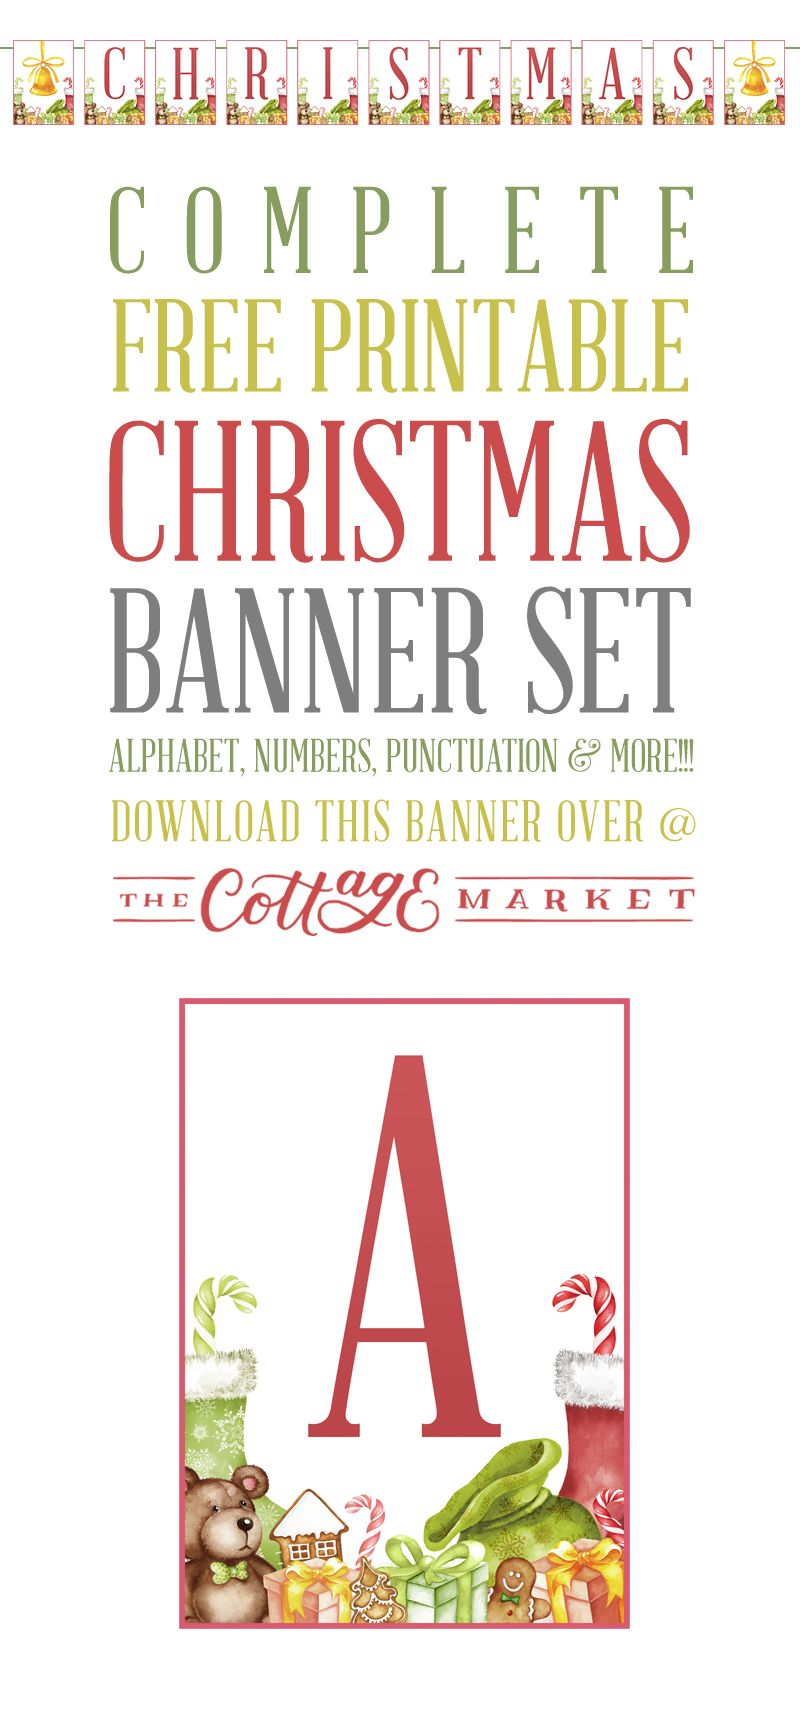 https://thecottagemarket.com/wp-content/uploads/2018/07/TCM-Christmas-Banner-TOWER-1.jpg